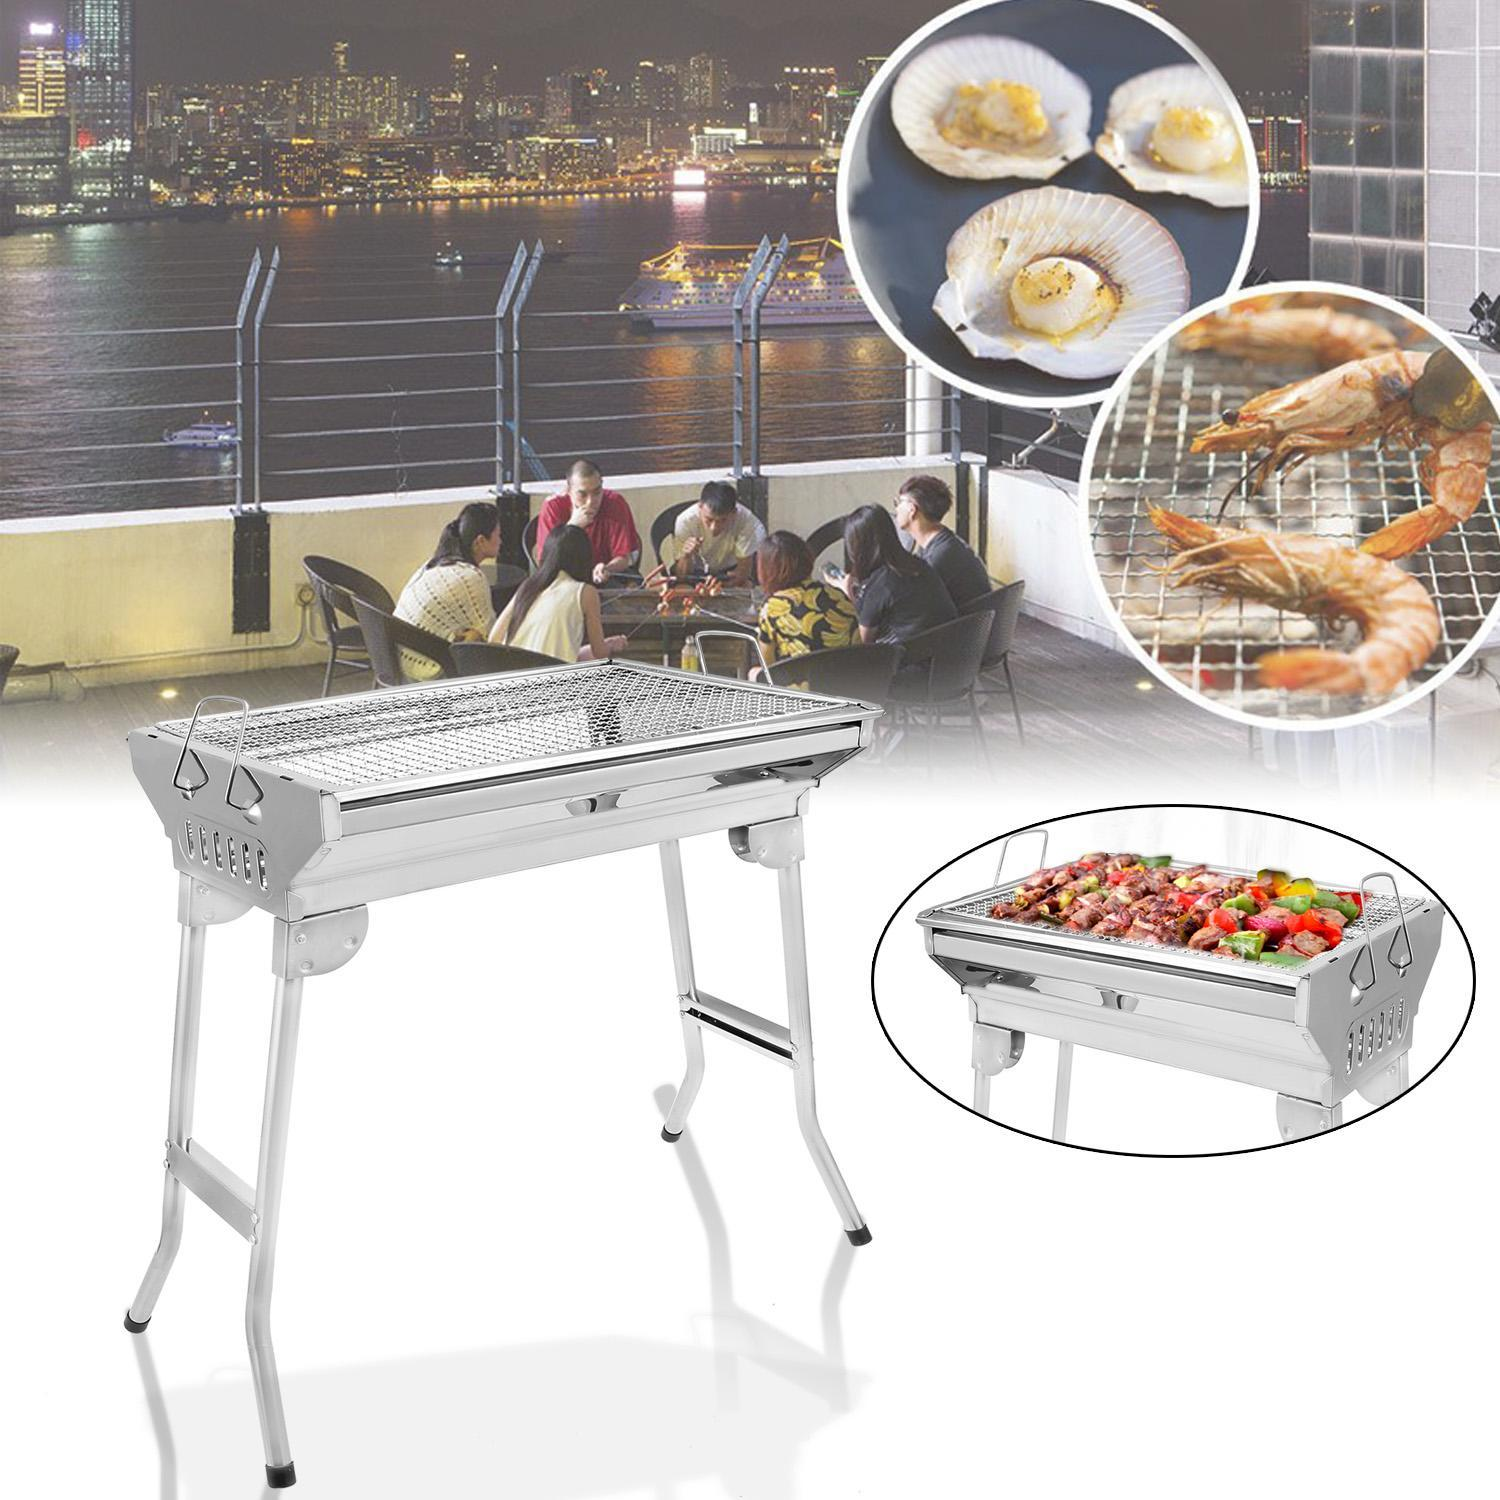 Folding Stainless Steel Charcoal Grill Cookouts BBQ Portable for Camping Hiking